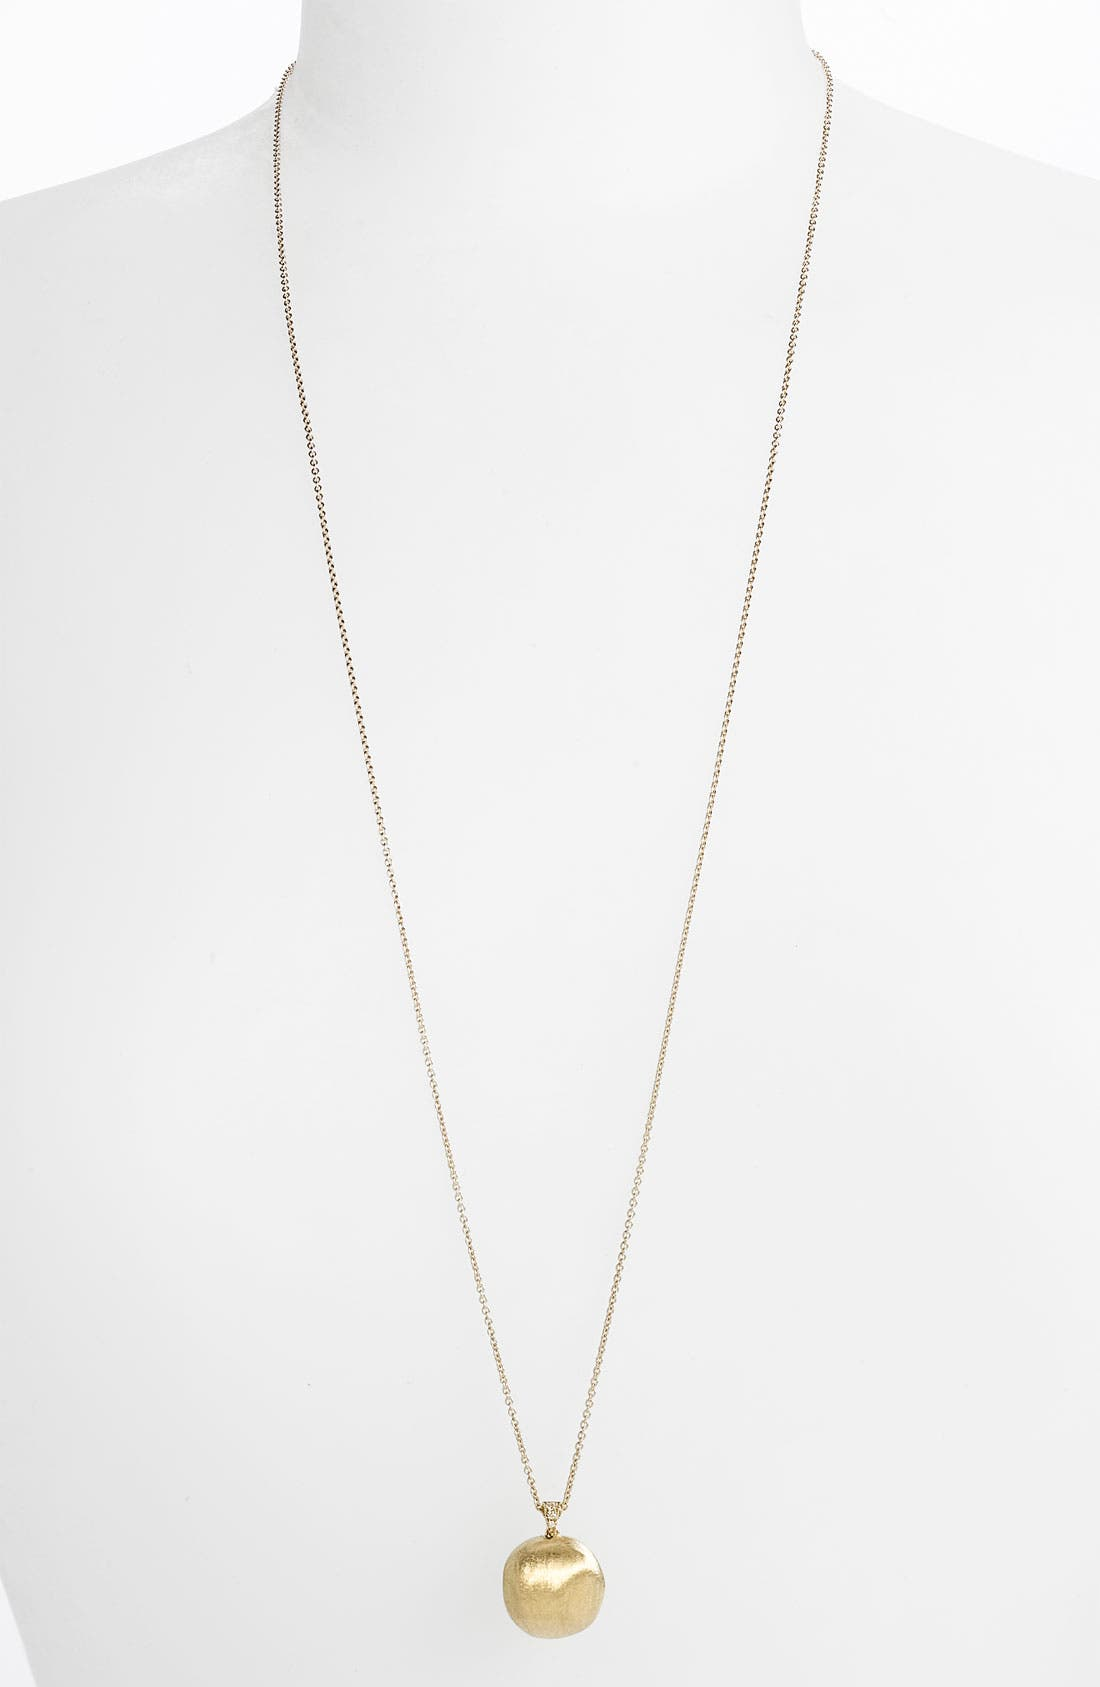 Main Image - Marco Bicego 'Africa' Long Pendant Necklace